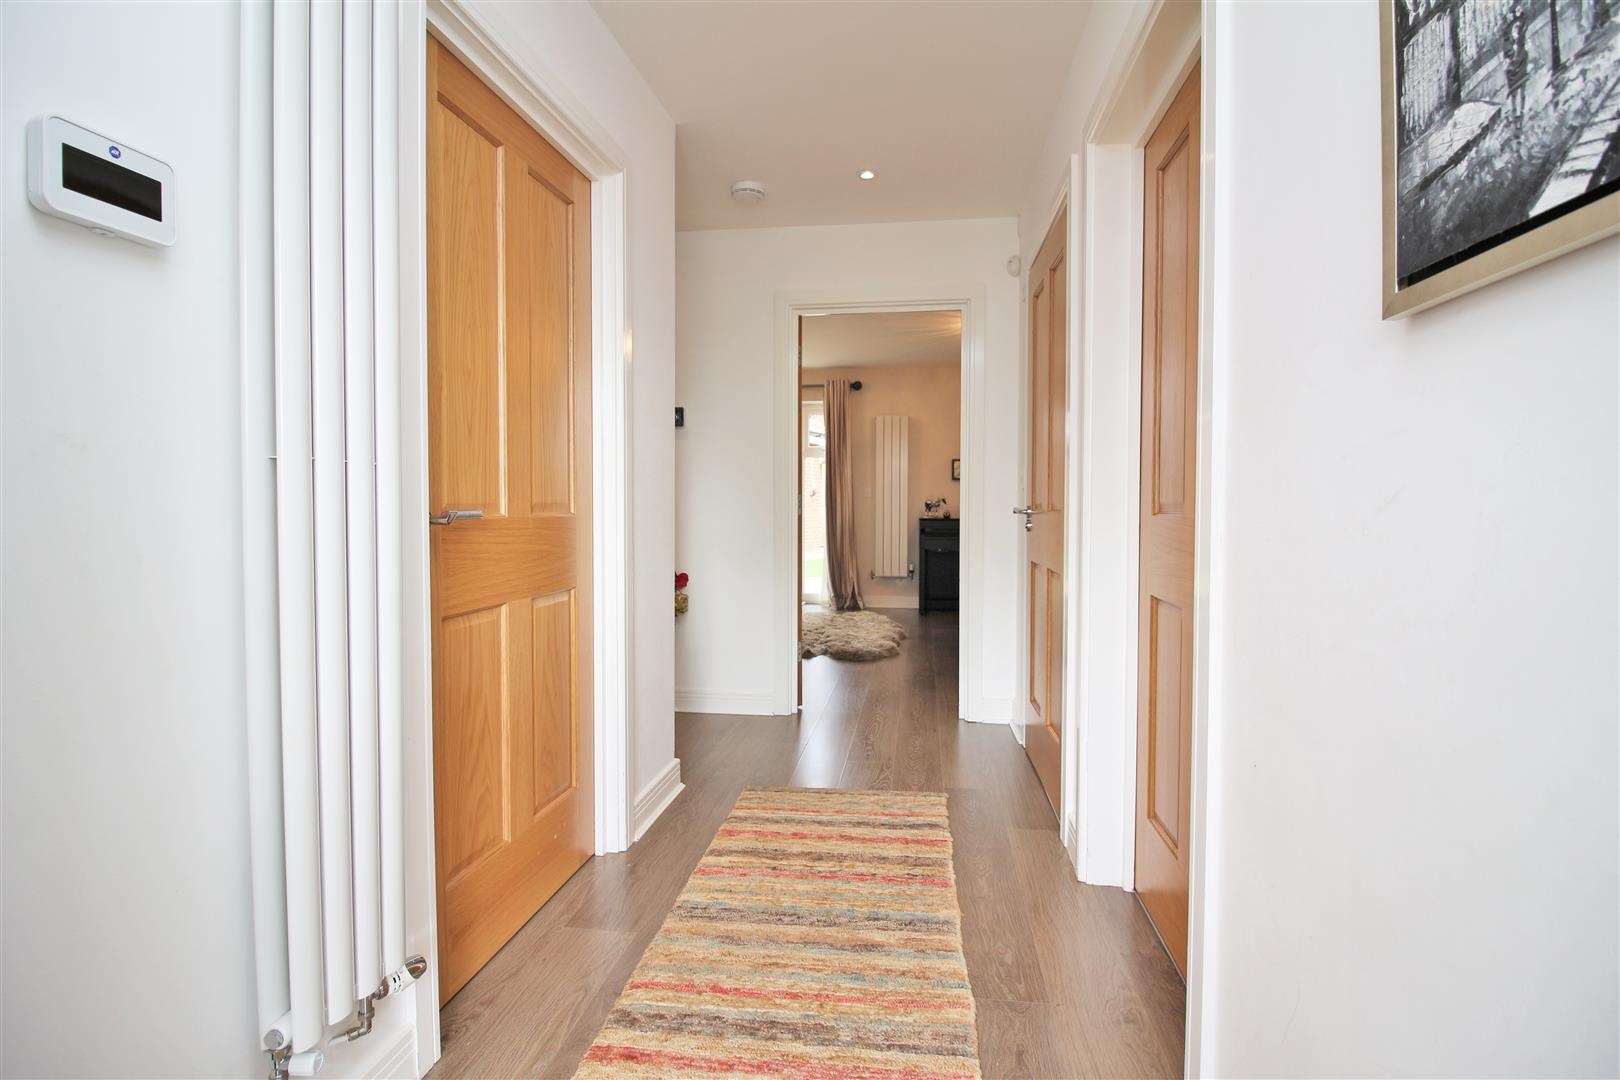 4 bed to rent in Leavesden - (Property Image 10)